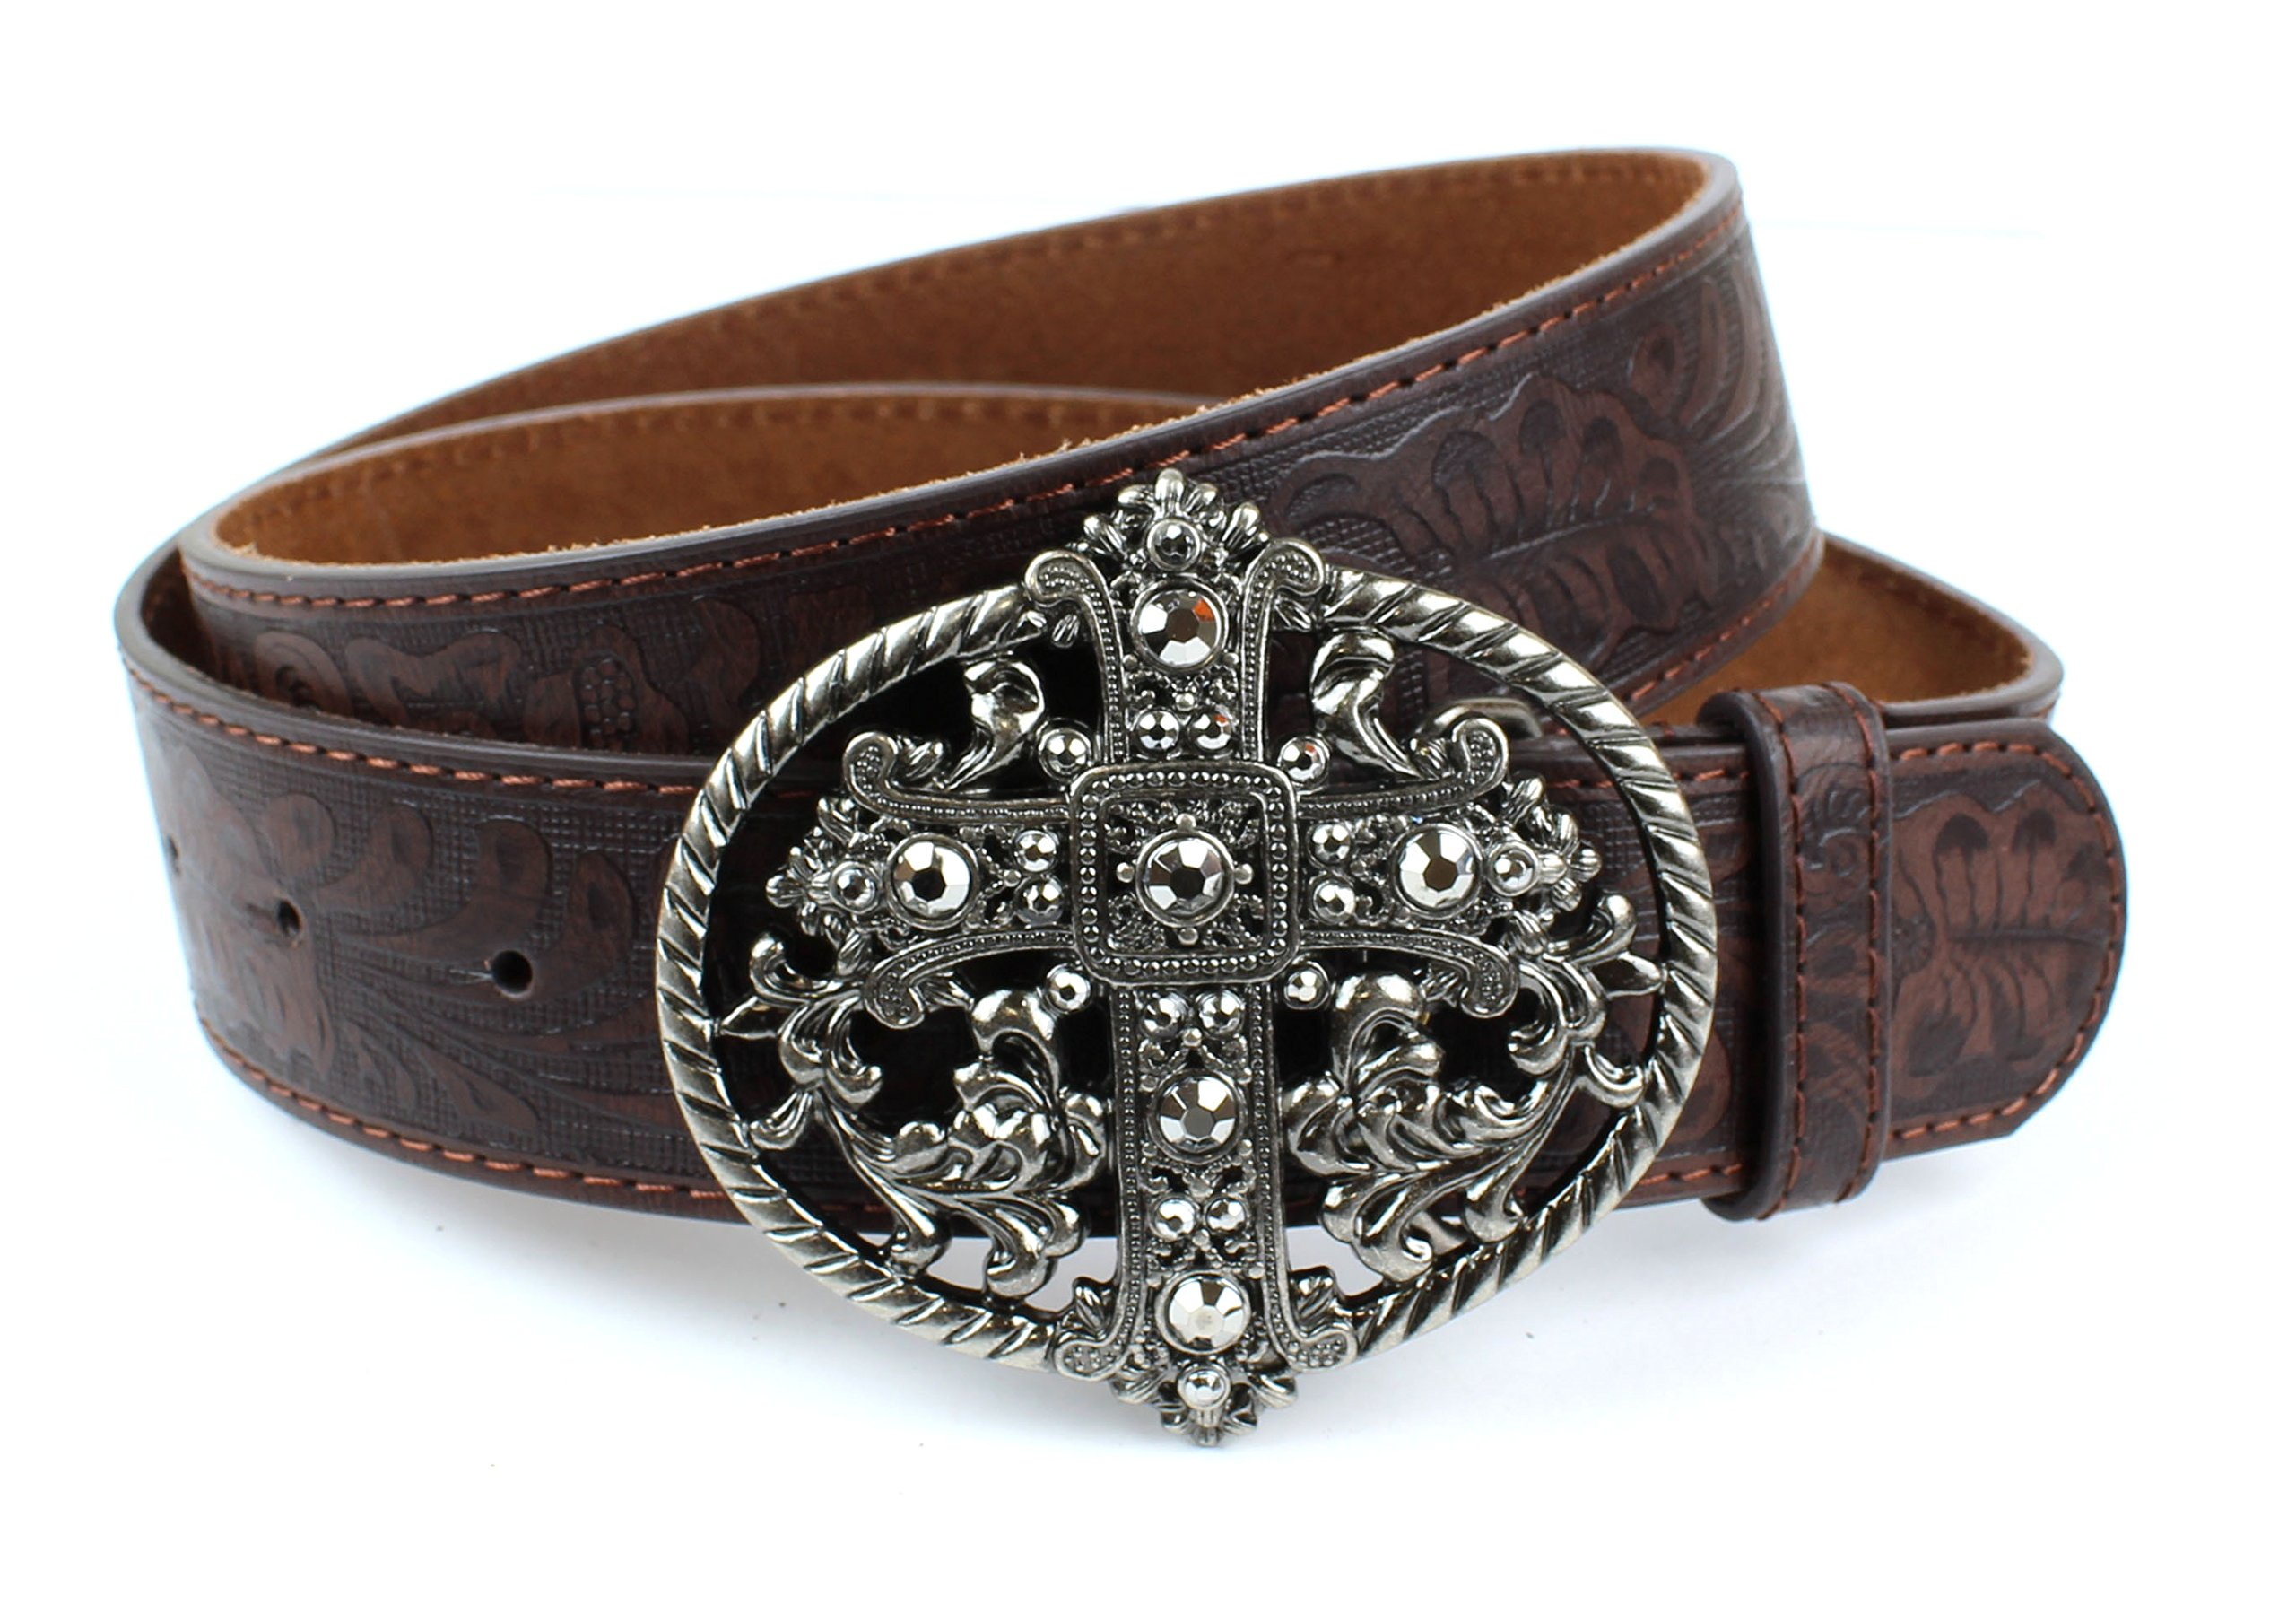 Western Embossed Scrollwork Leather Belt Vintage Cross Oval Buckle (Brown L) by BC Belts